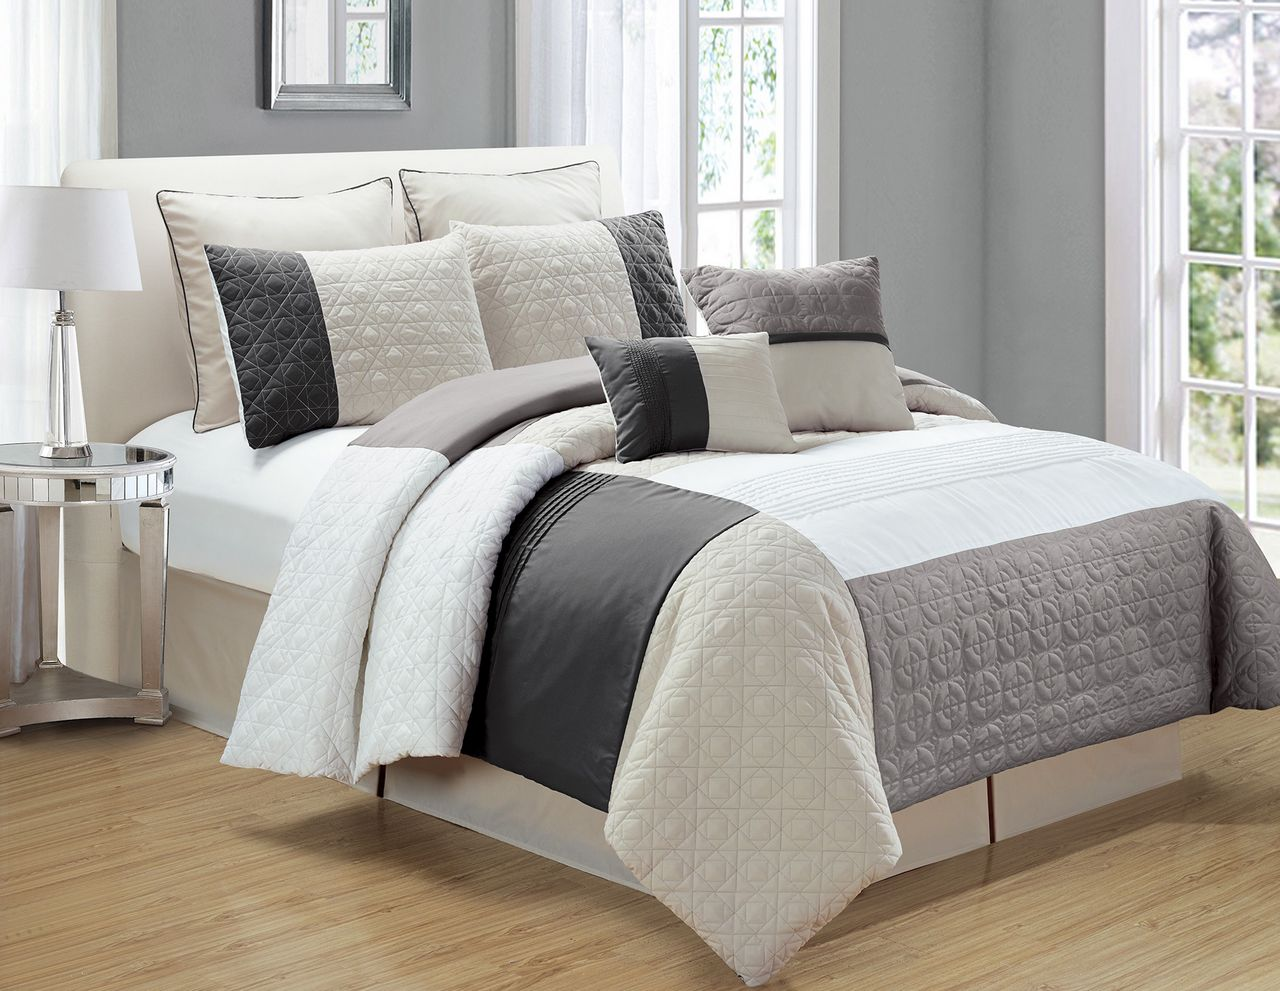 dsc sets comforter looks bedding ivory overfilled oversized in save striped solid reversible set and emboss